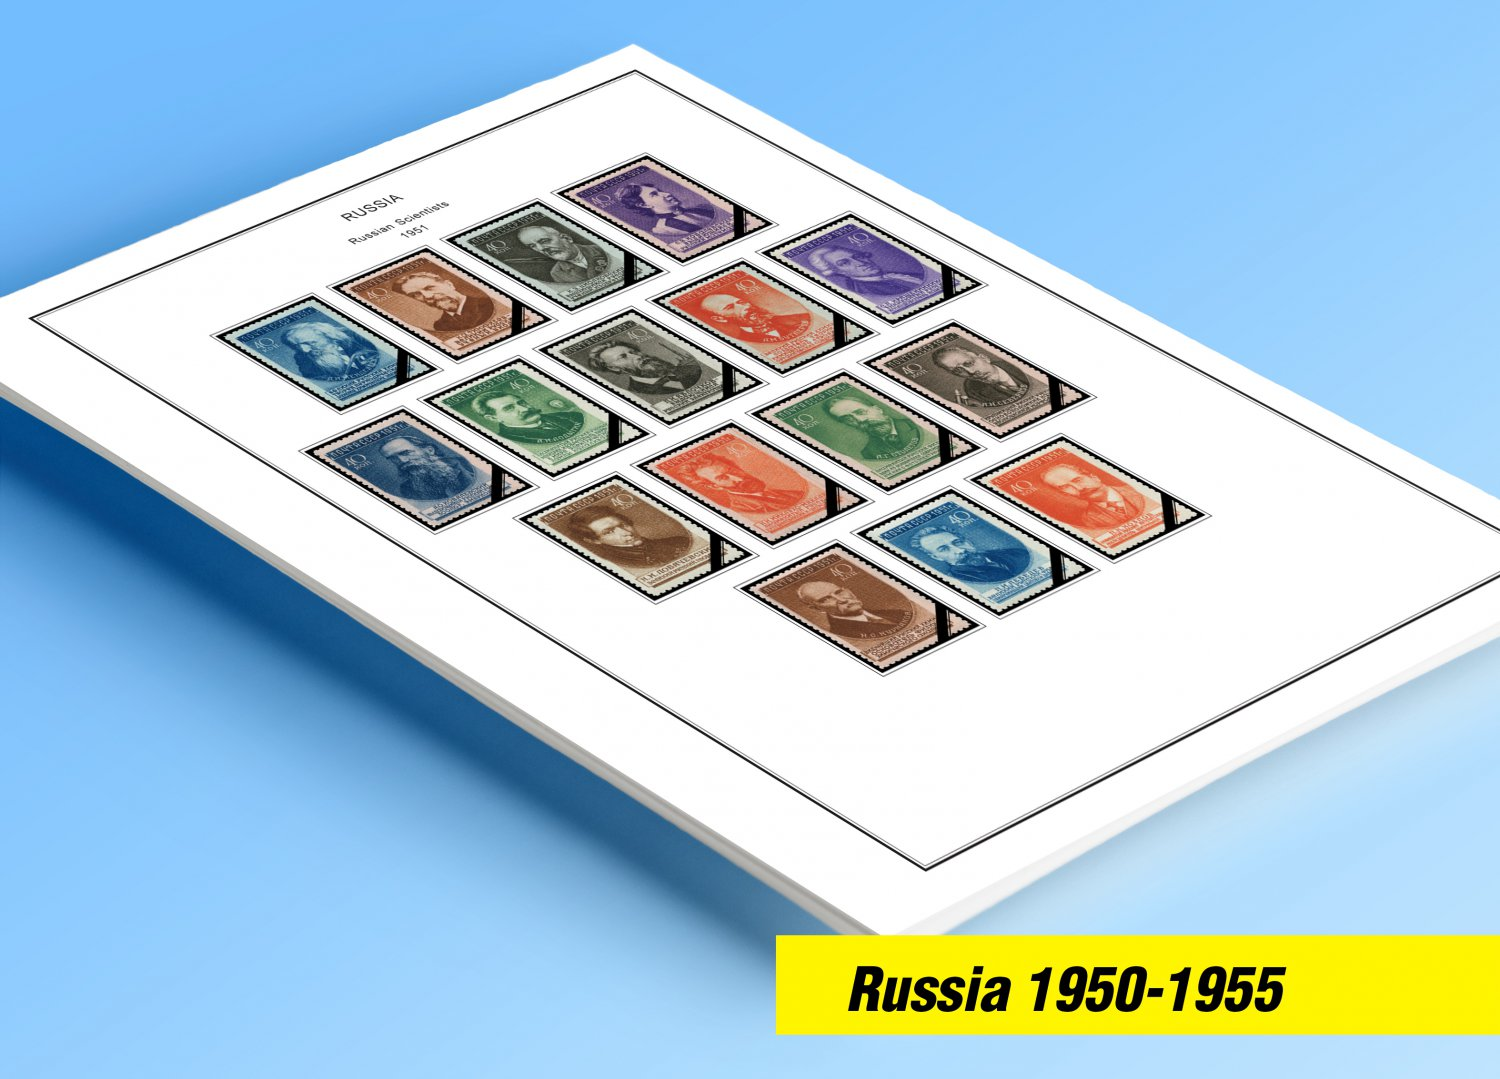 COLOR PRINTED RUSSIA 1950-1955 STAMP ALBUM PAGES (45 illustrated pages)